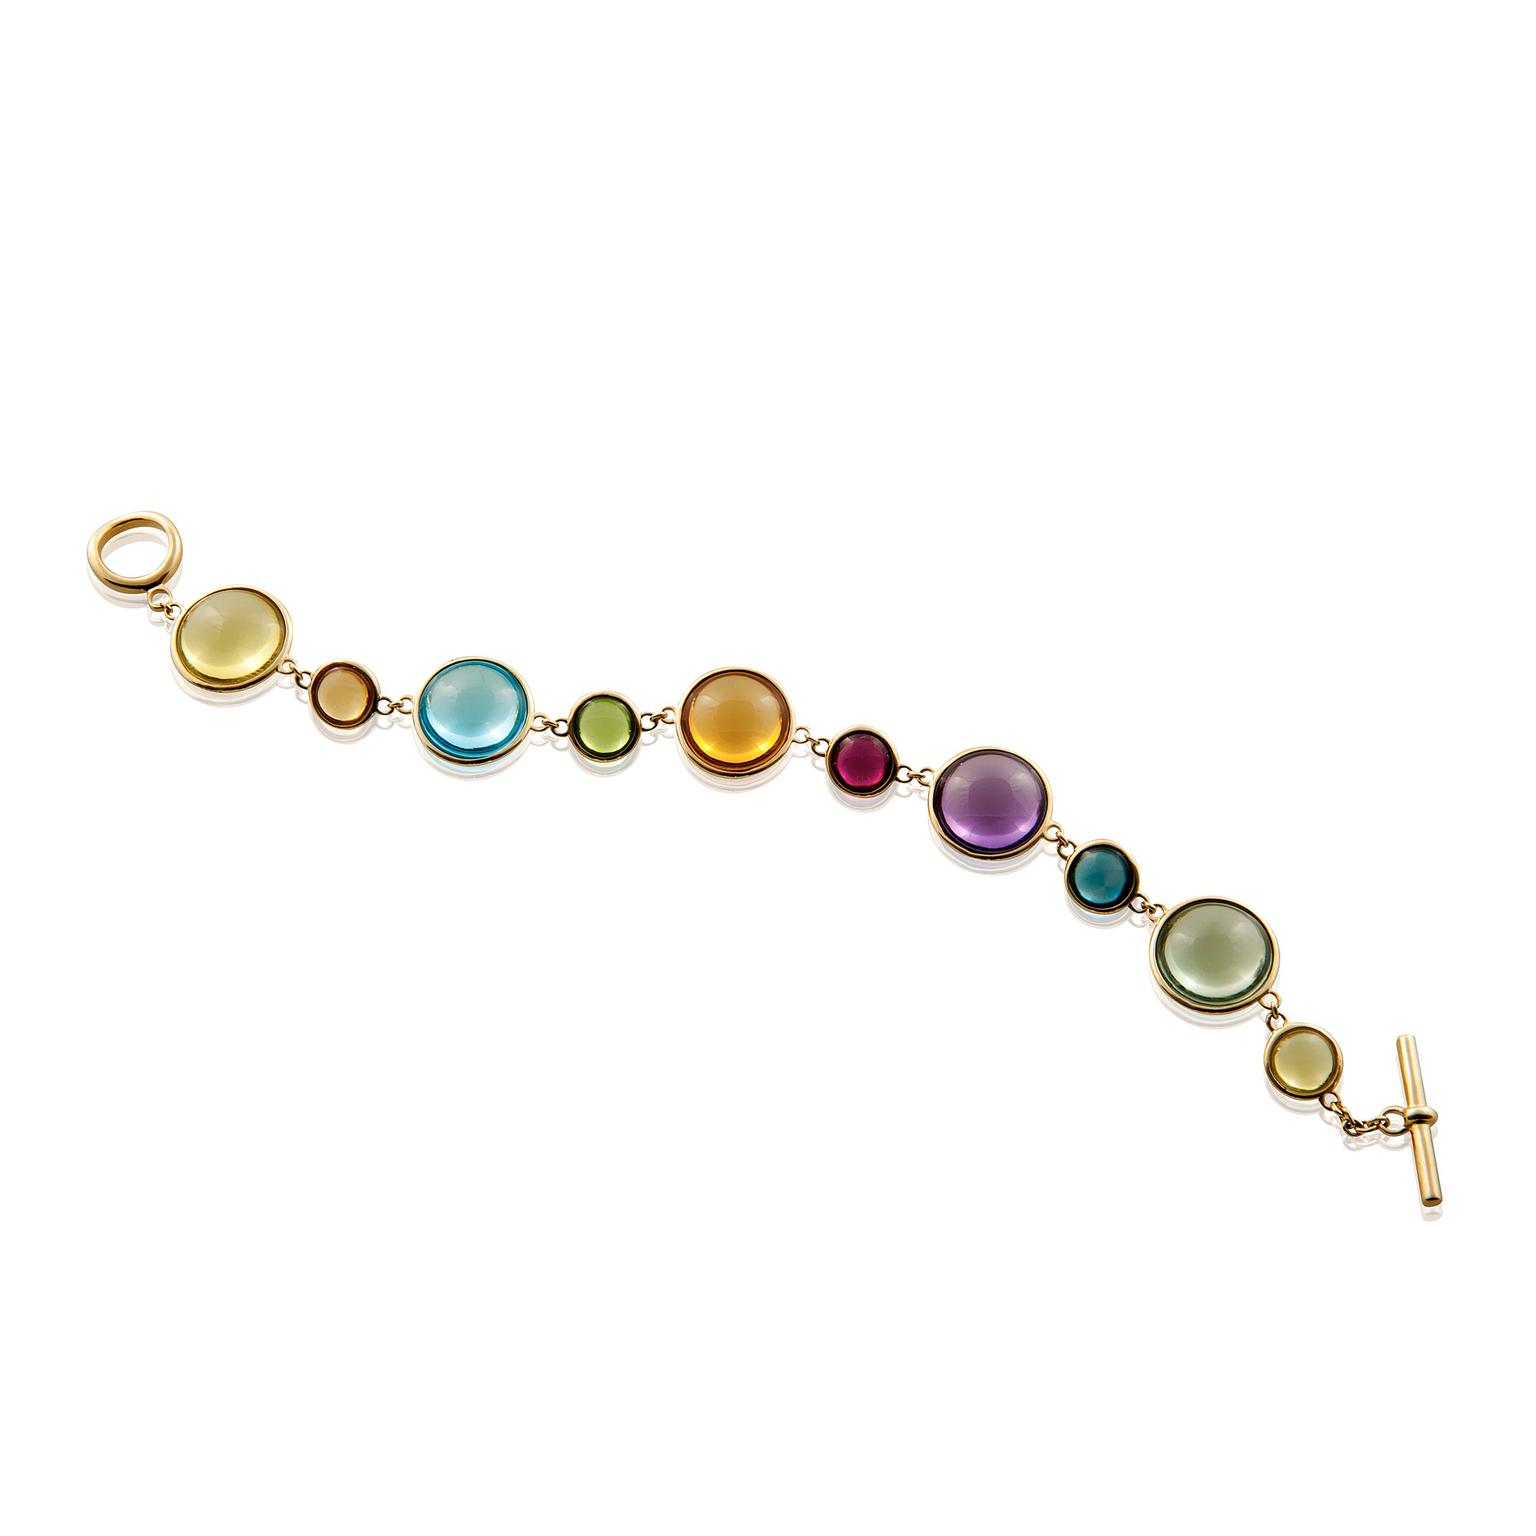 Goshwara multicoloured gemstone bracelet